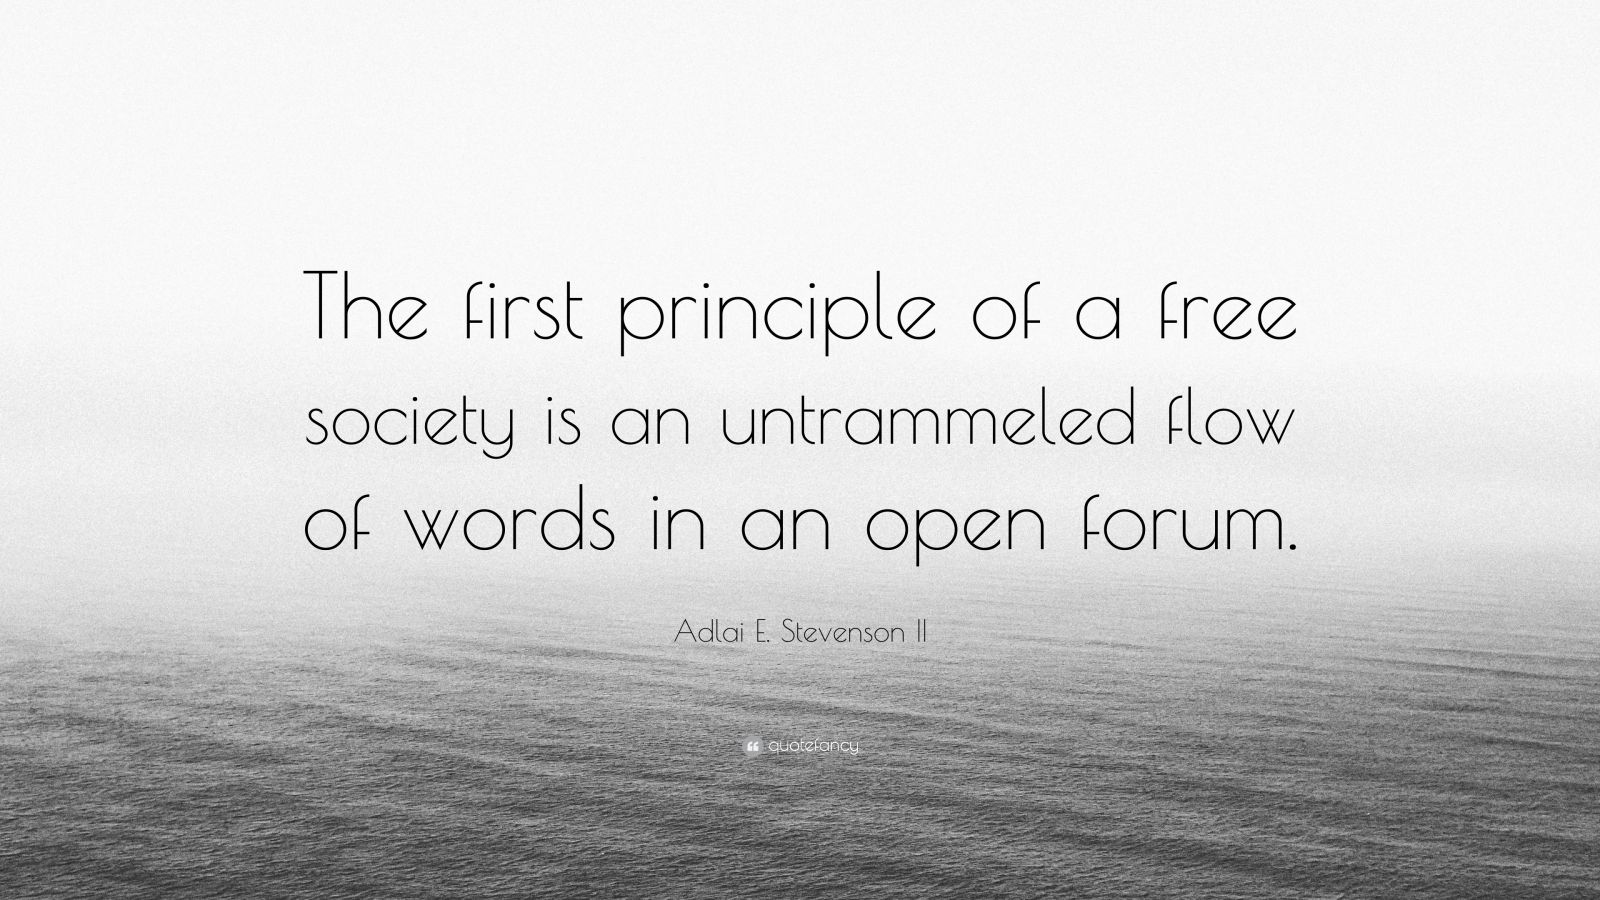 """Adlai E. Stevenson II Quote: """"The first principle of a free society is an untrammeled flow of words in an open forum."""""""